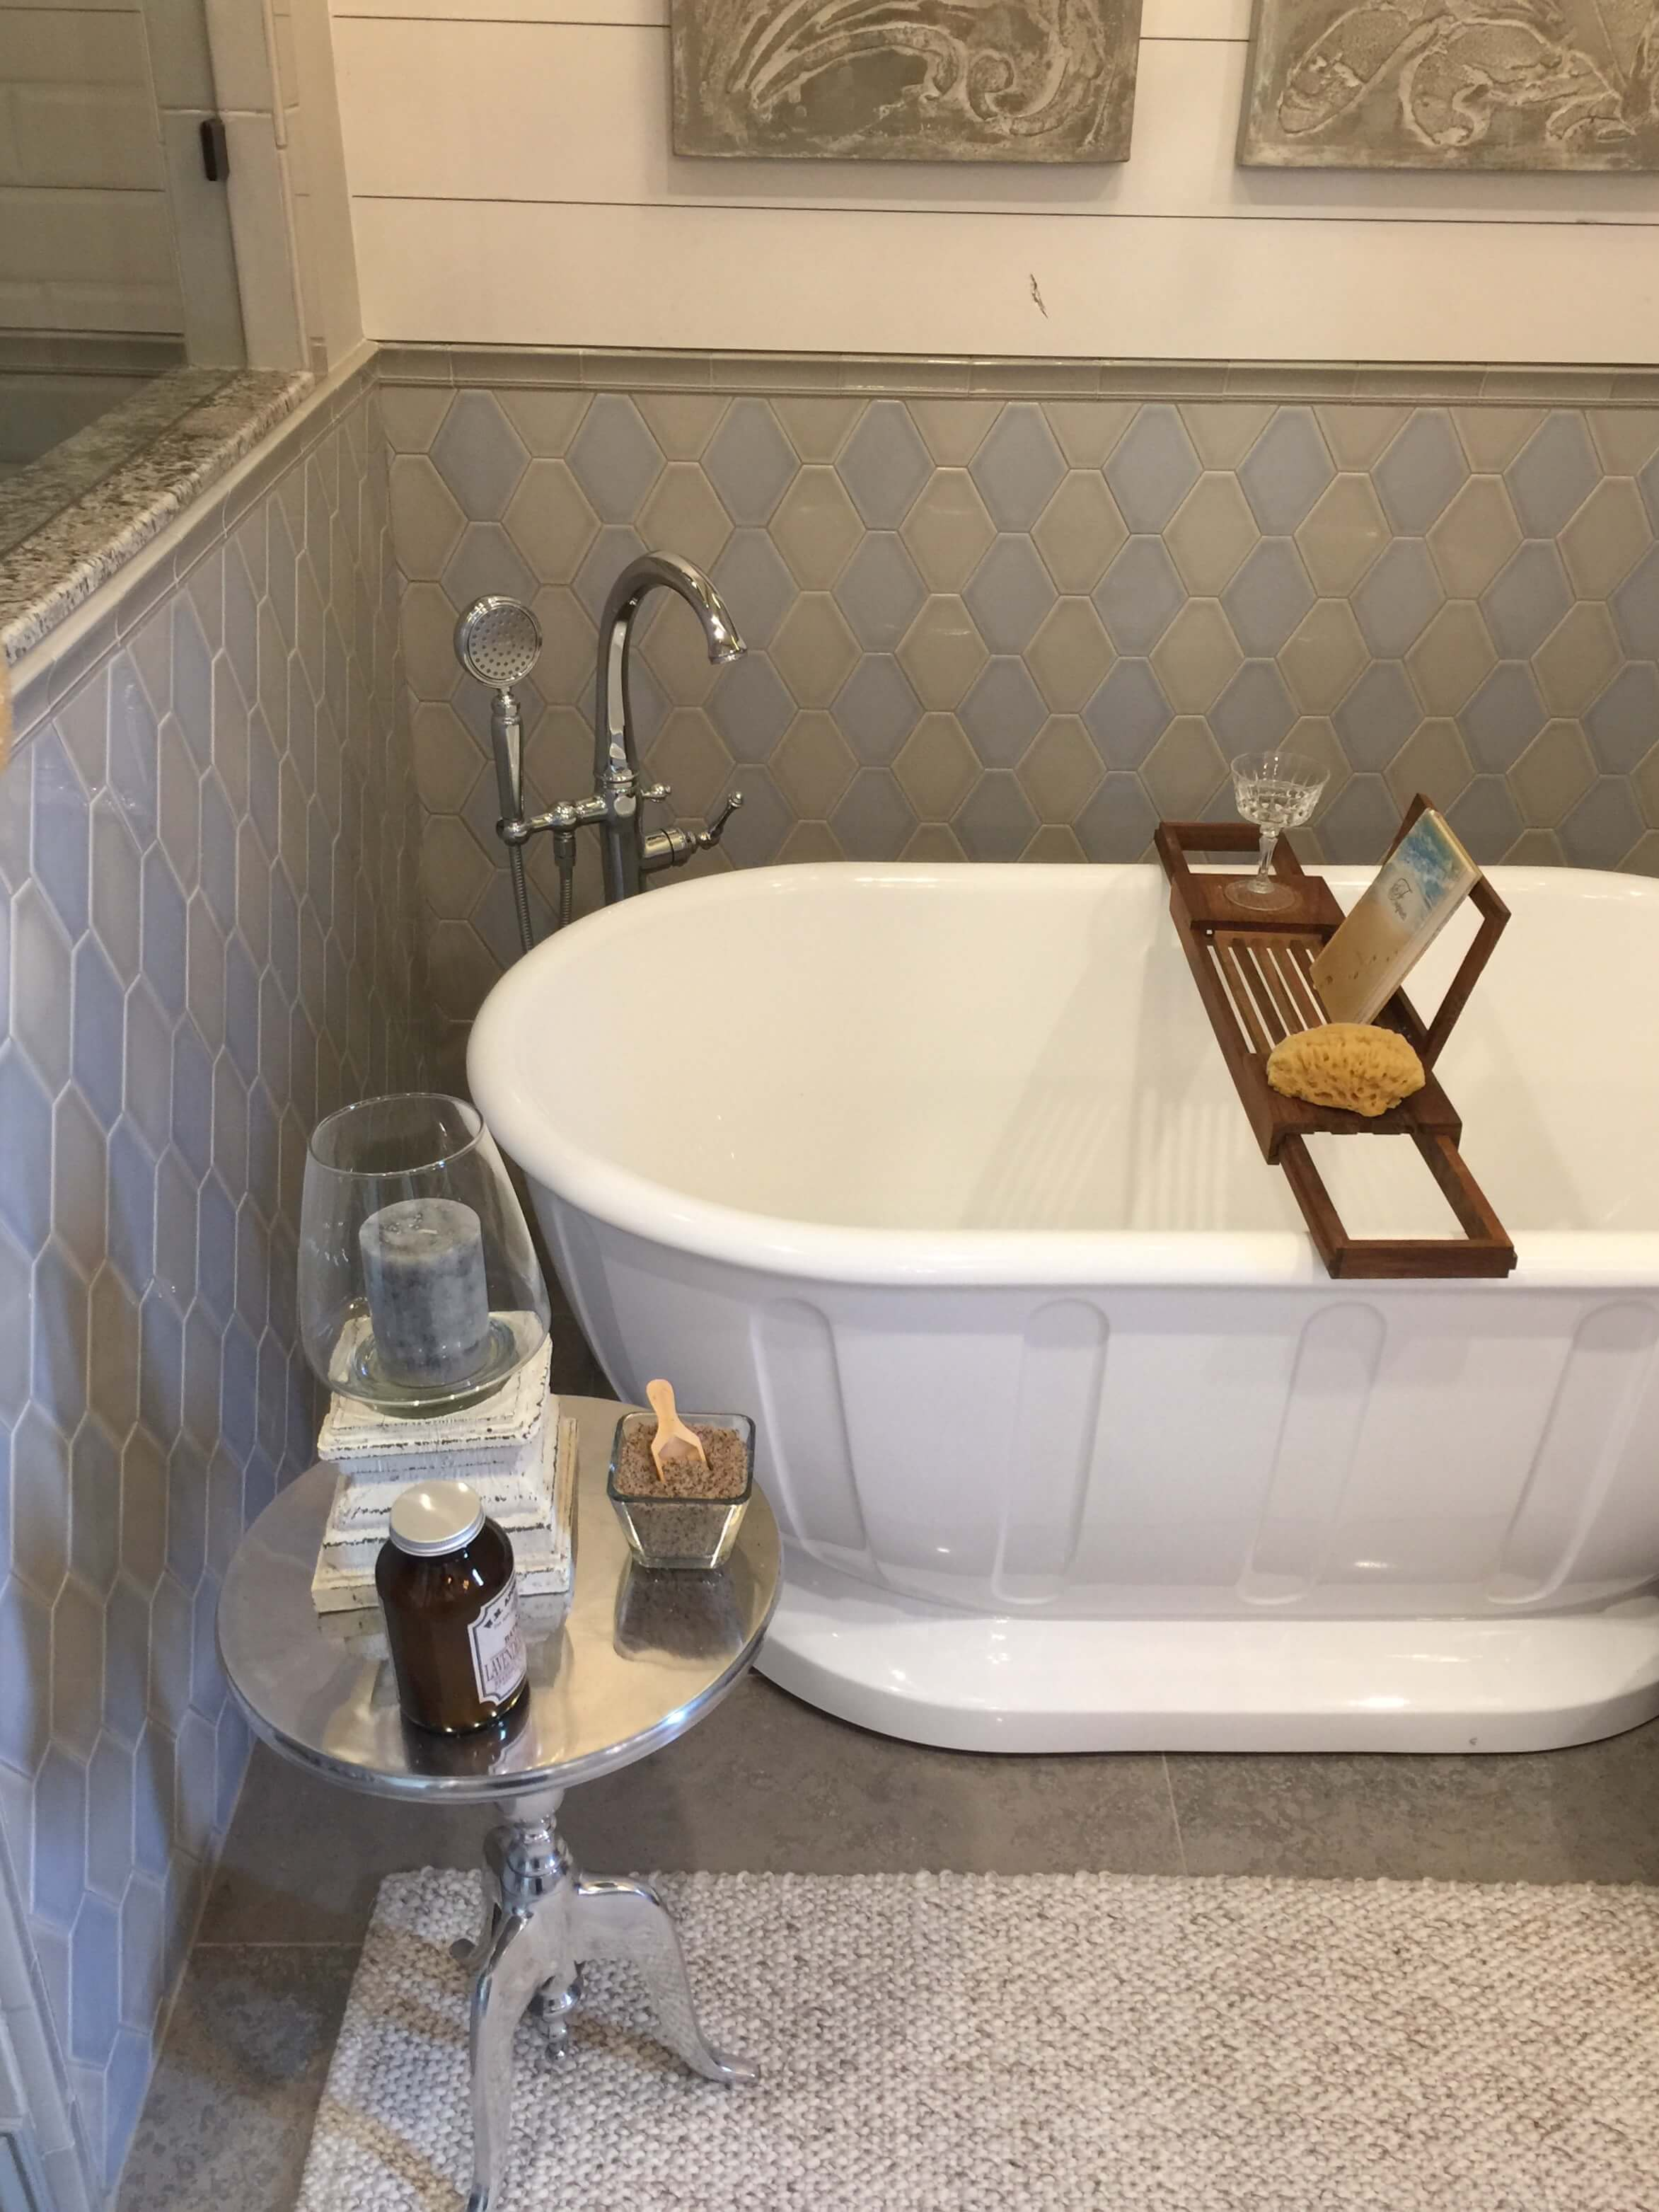 This free standing tub is nestled amongst some pretty tile walls in the ASID Showhouse guest bath, designed by Christina Mullen of CM Designs. #tub #freestandingtub #bathroomdesign #bathroomideas